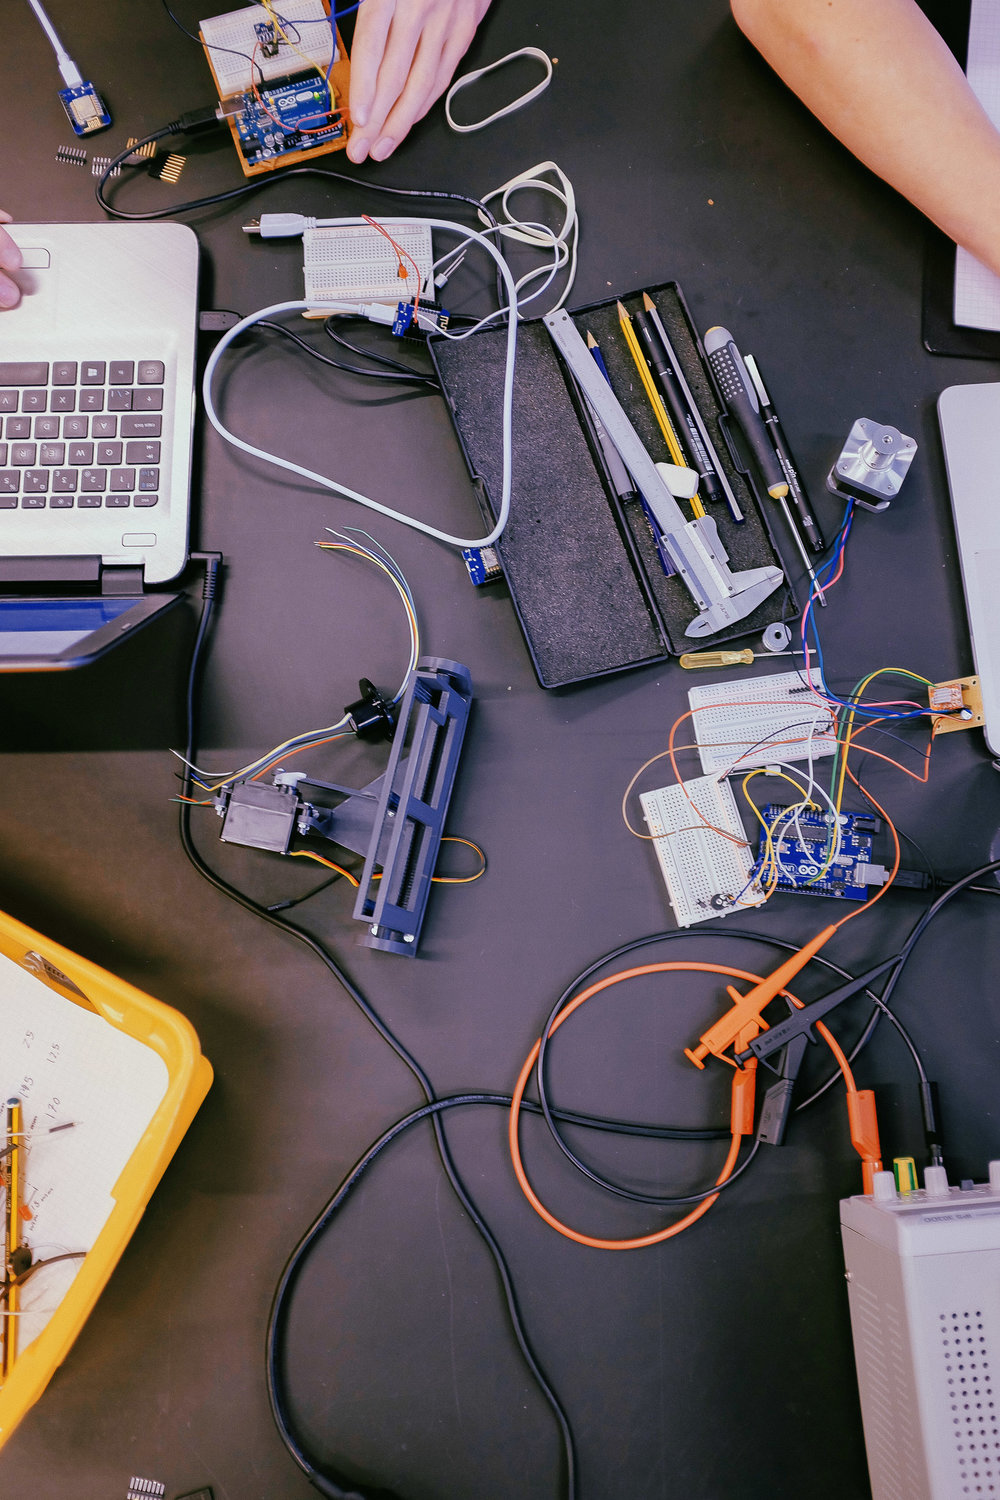 Prototyping with Arduino -